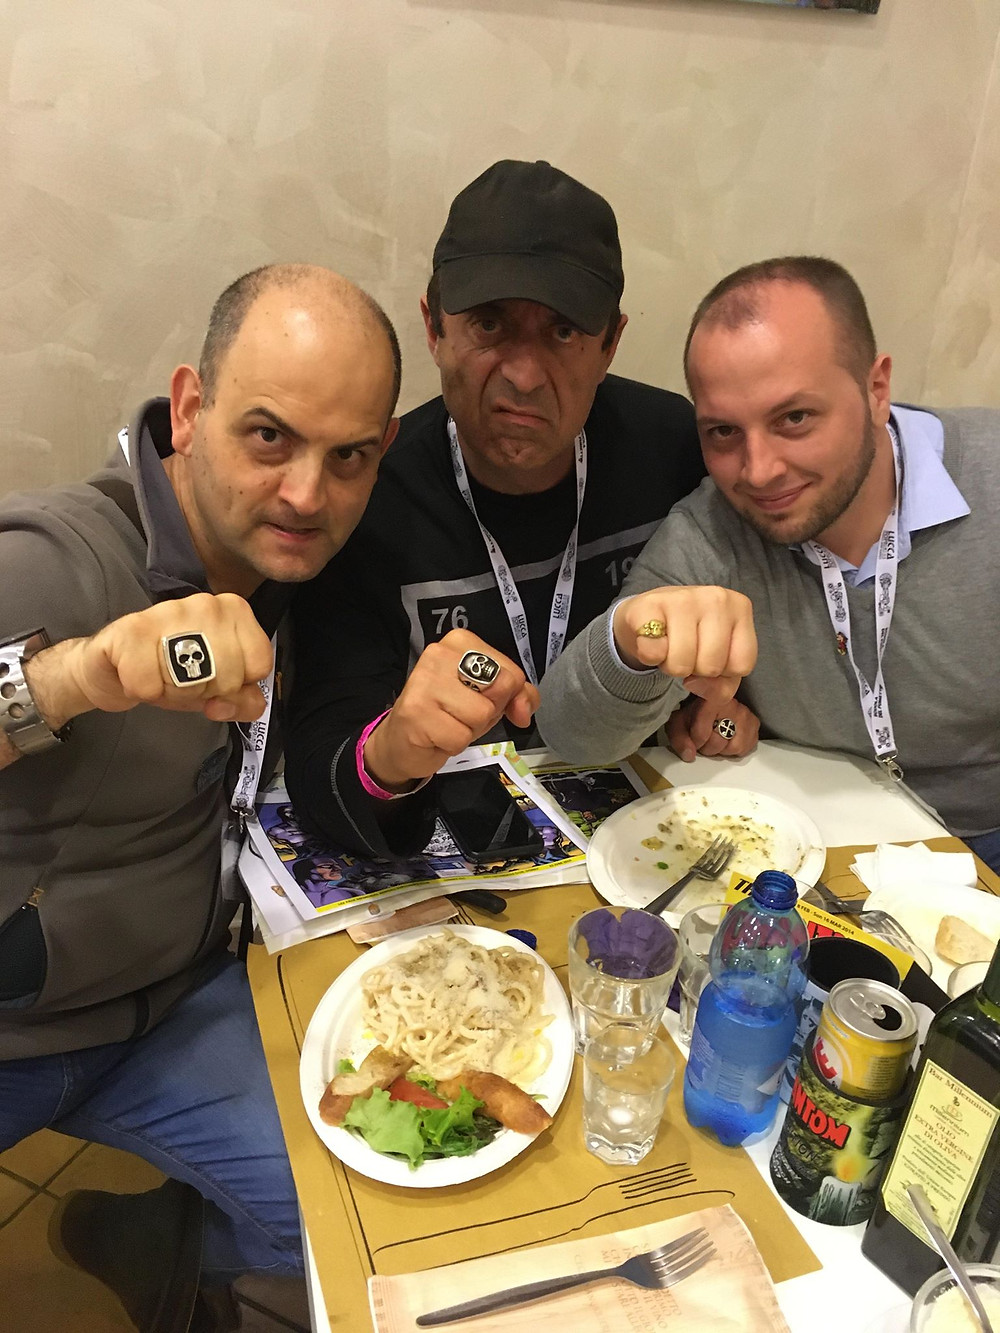 Massimo Gamberi, Sal Velluto and Luca Giorgi catch up at the Lucca Comics and Games convention 2019.